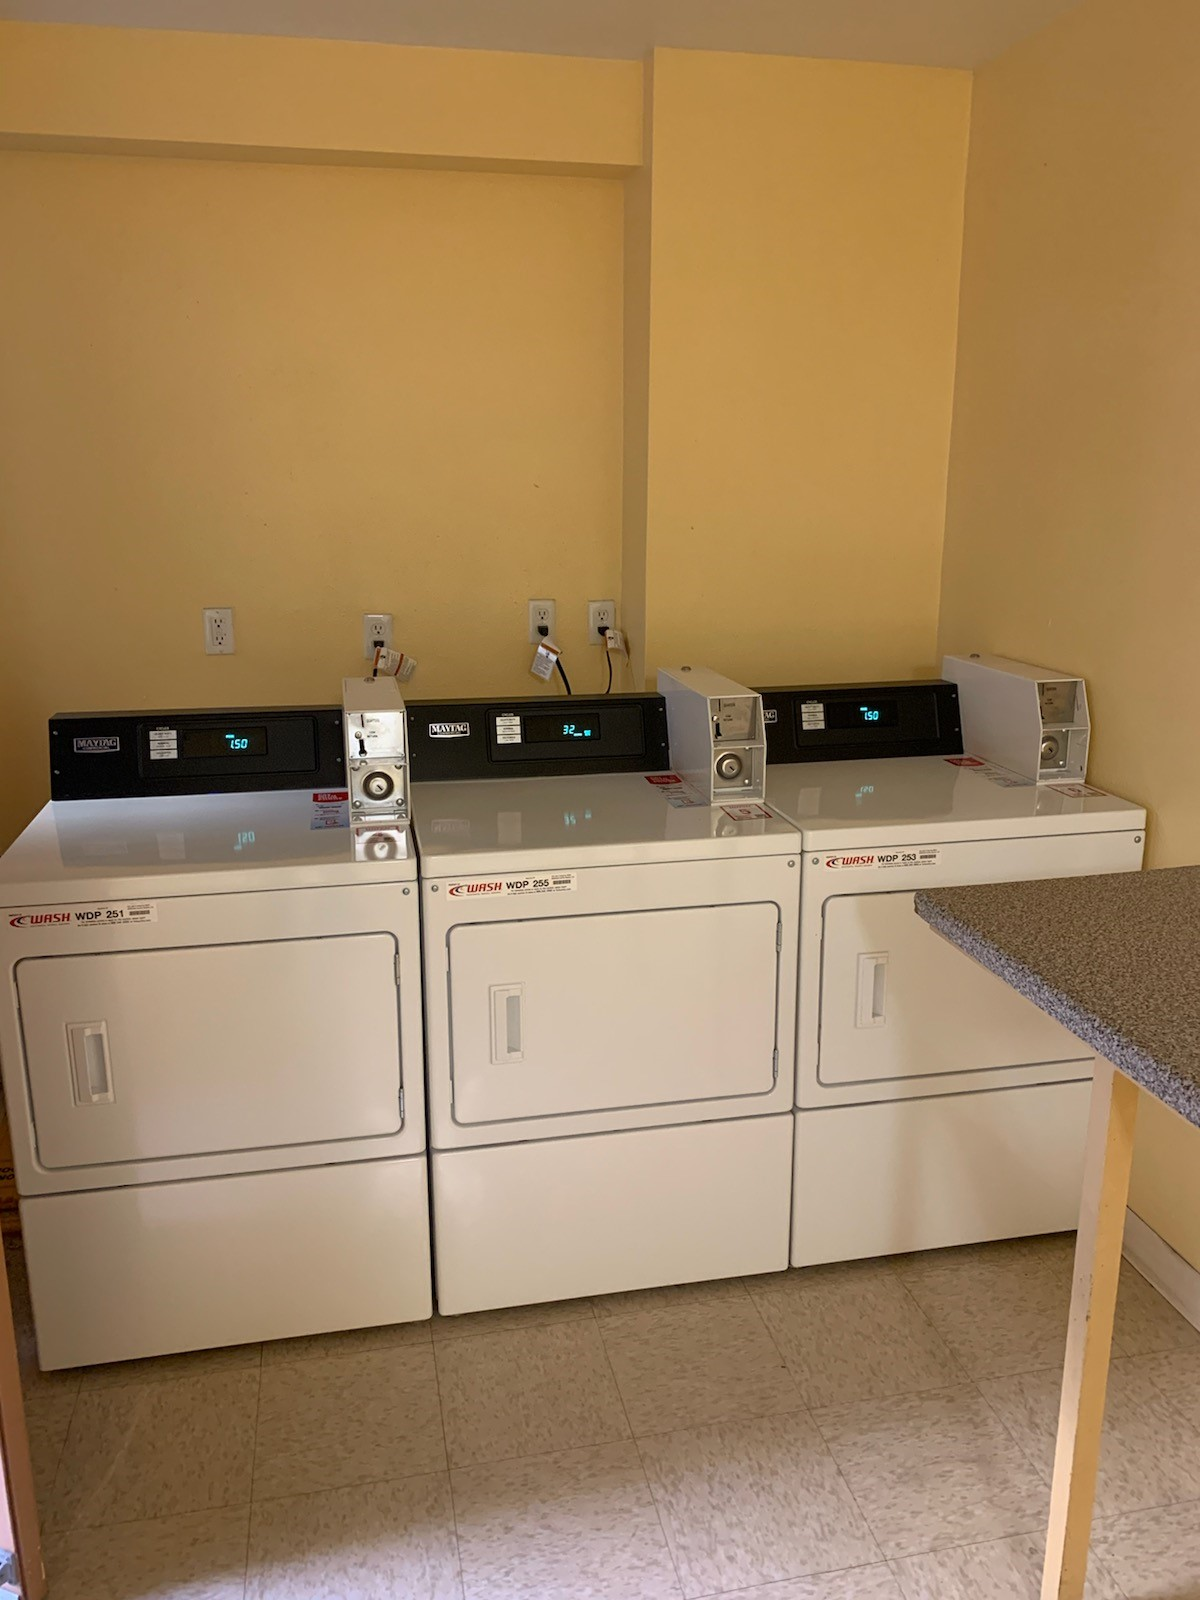 Laundry room with three machines shown and a folding table.